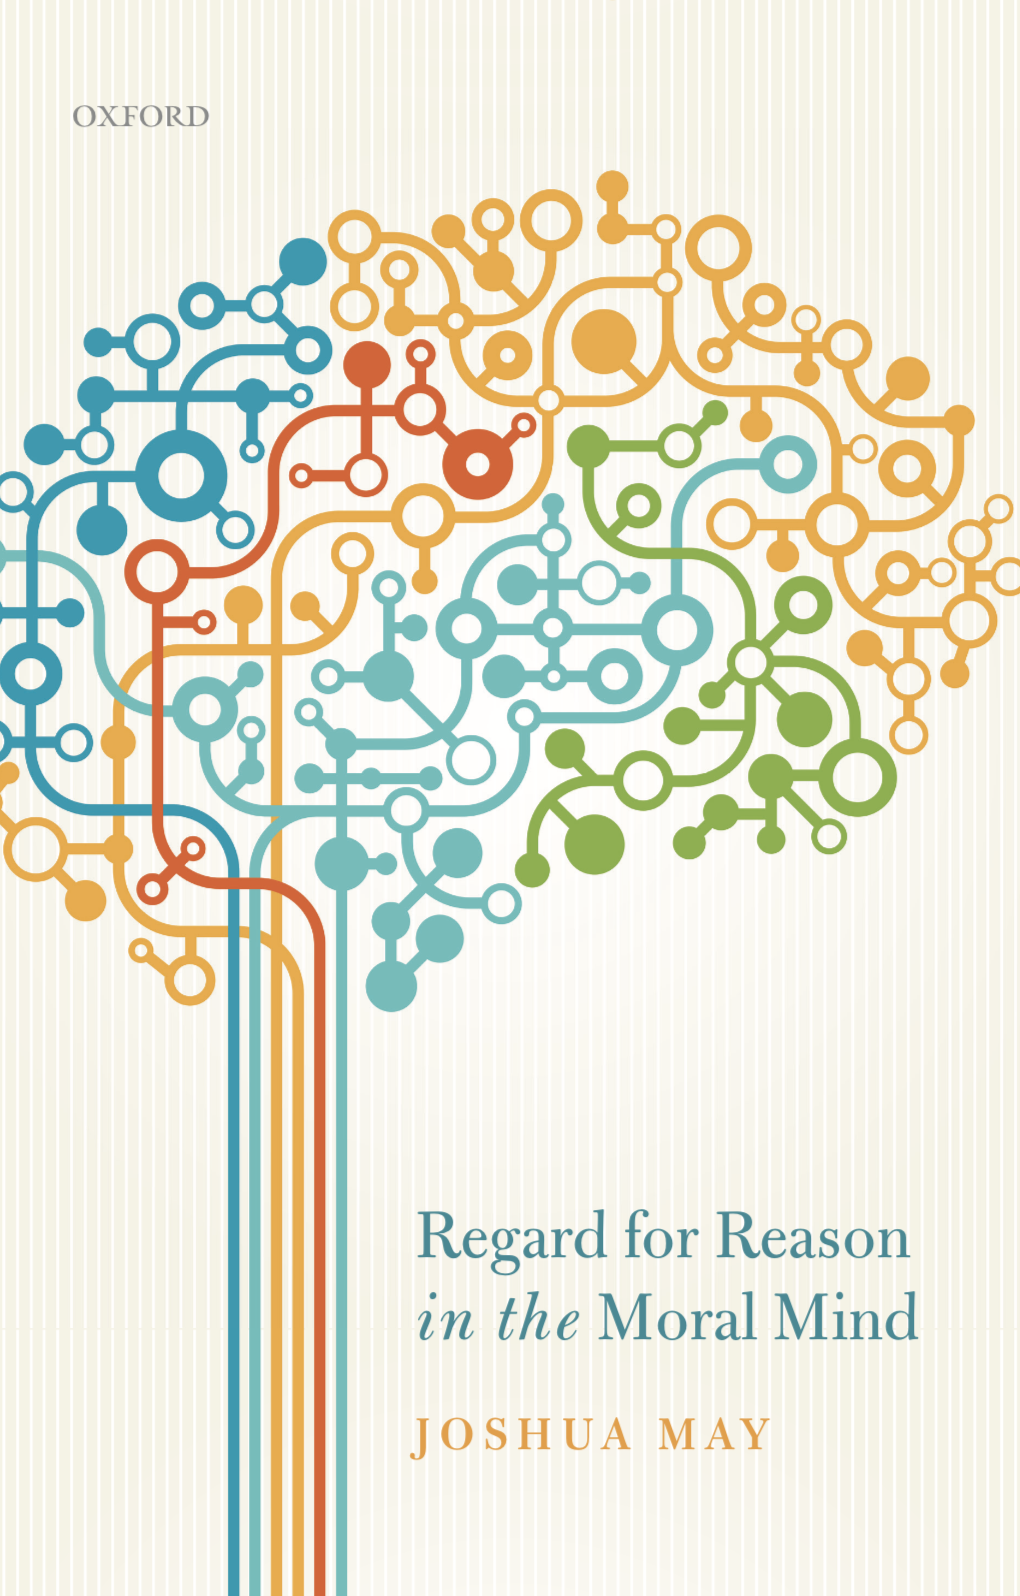 Regard for Reason in the Moral Mind (OUP, 2018)